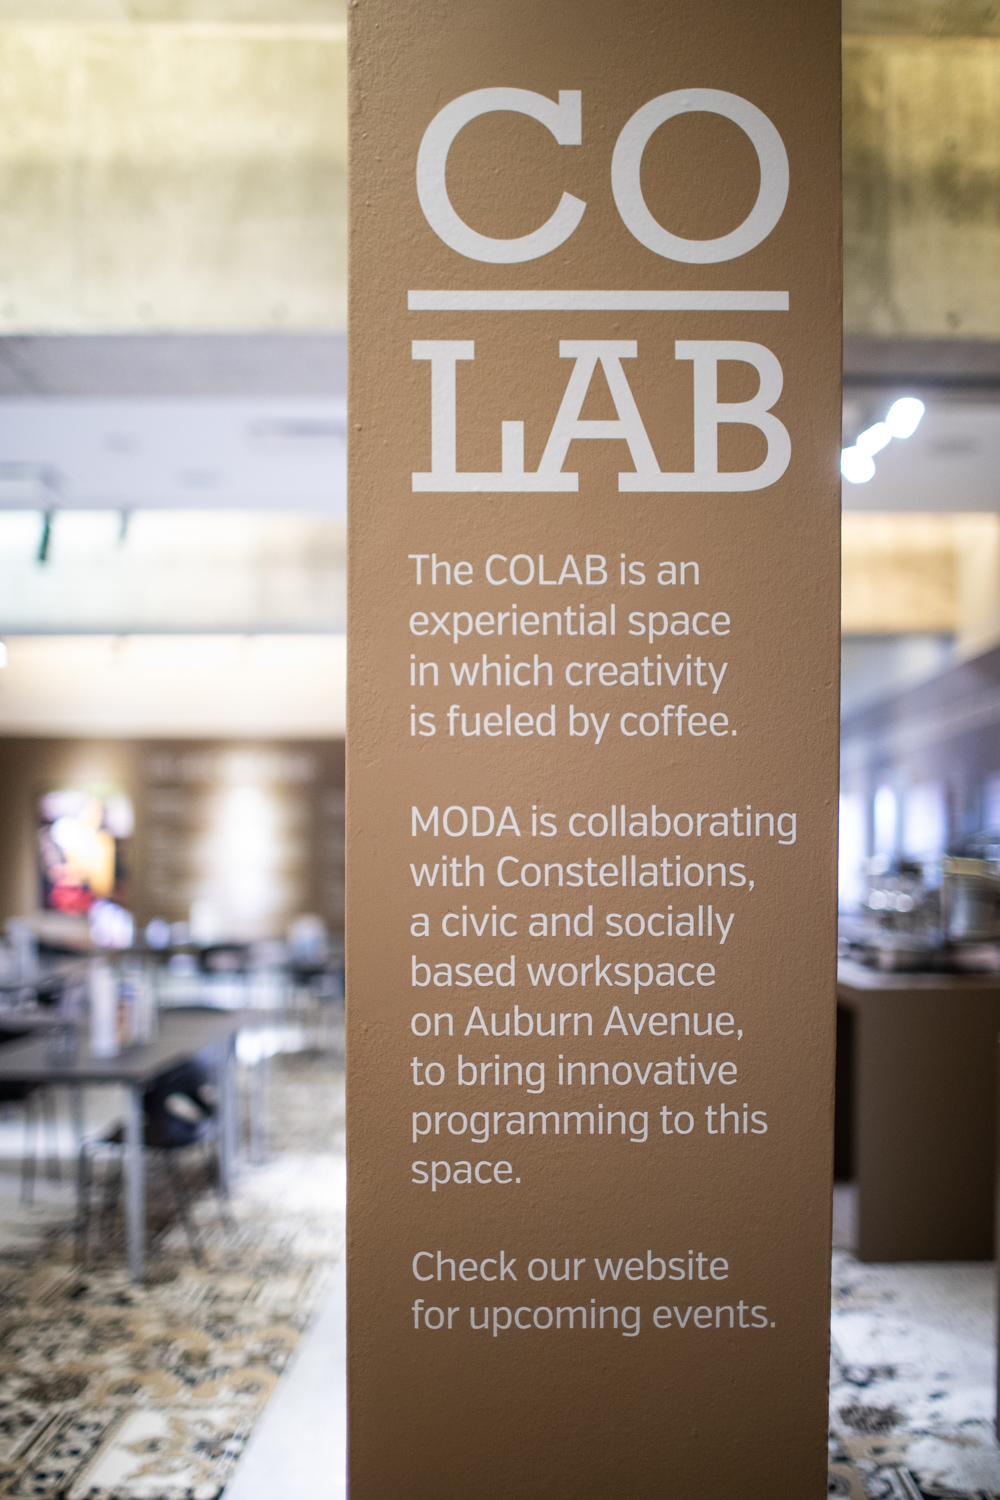 MODA's partnership with Co.Lab.